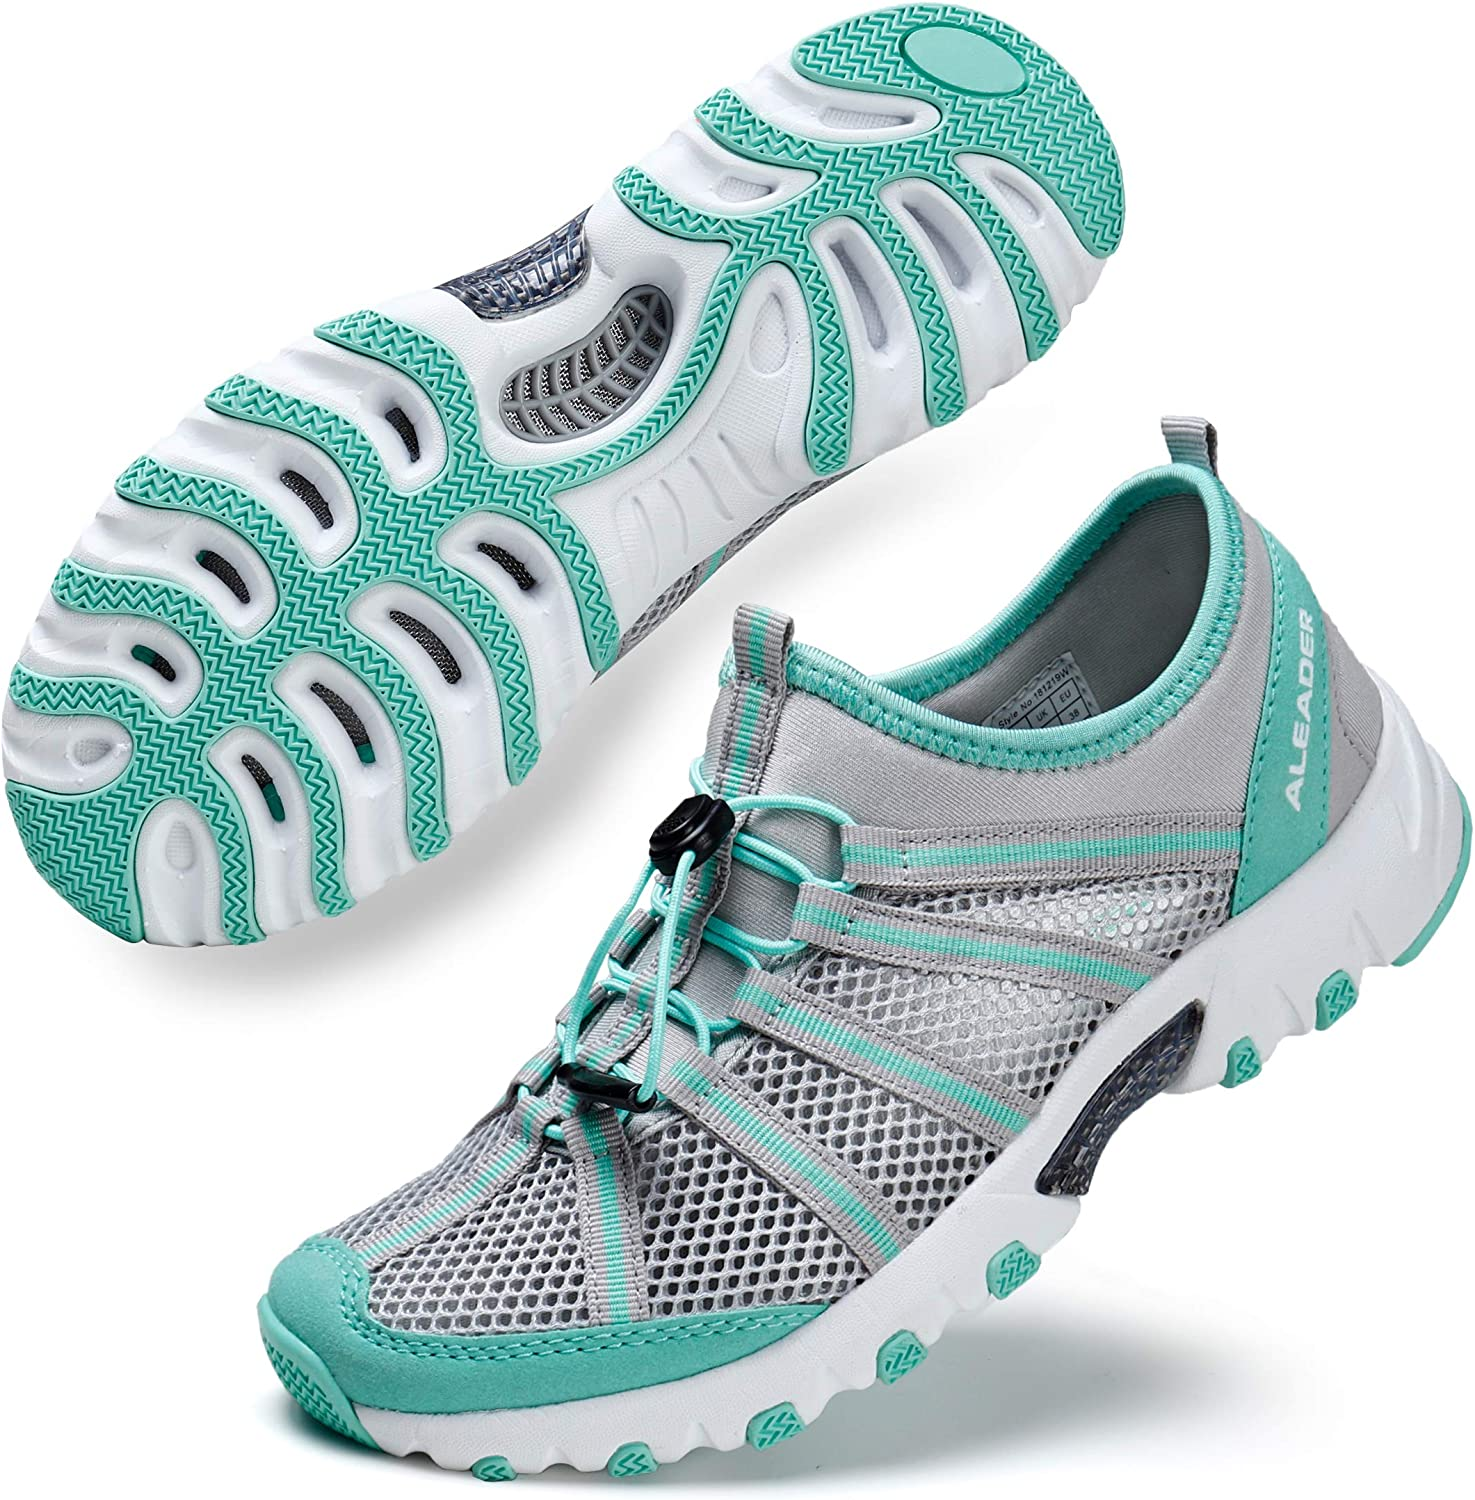 ALEADER Women s Water Hiking Shoe, Breathable, Wet-Traction Grip